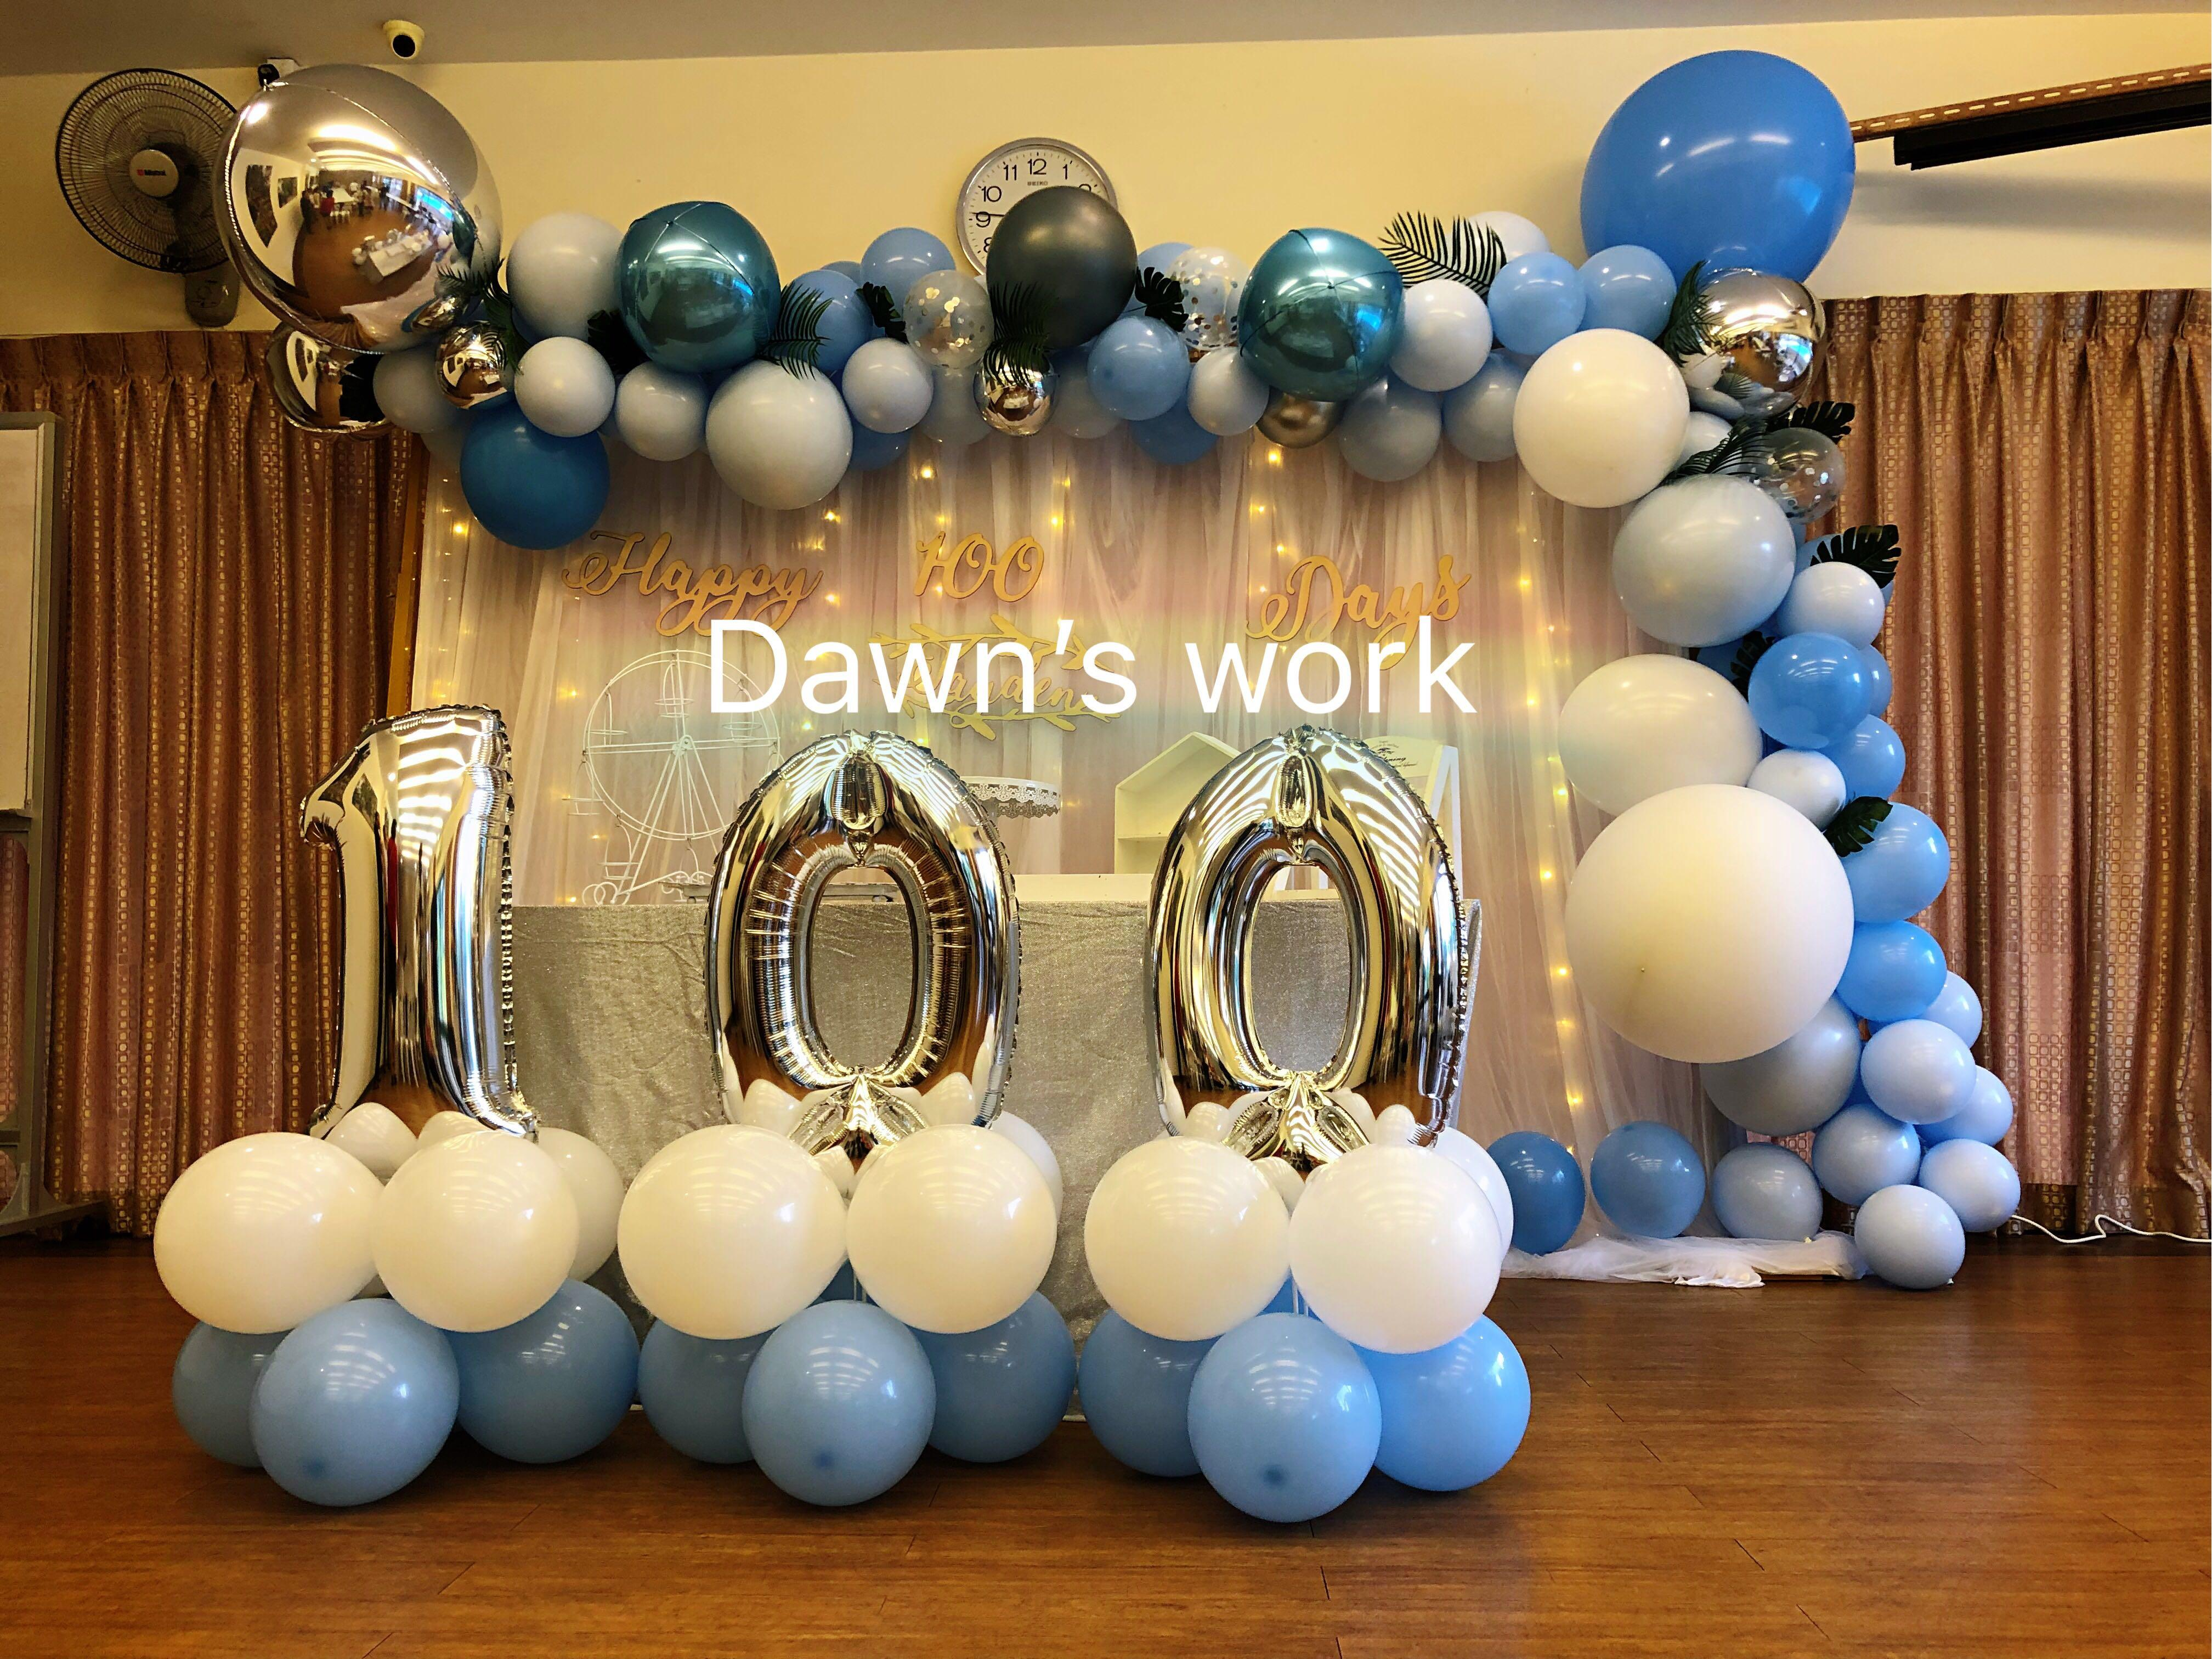 Balloon Garland Balloon Decoration Party Backdrop Photo Booth Backdrop Desert Table Backdrop Design Craft Others On Carousell